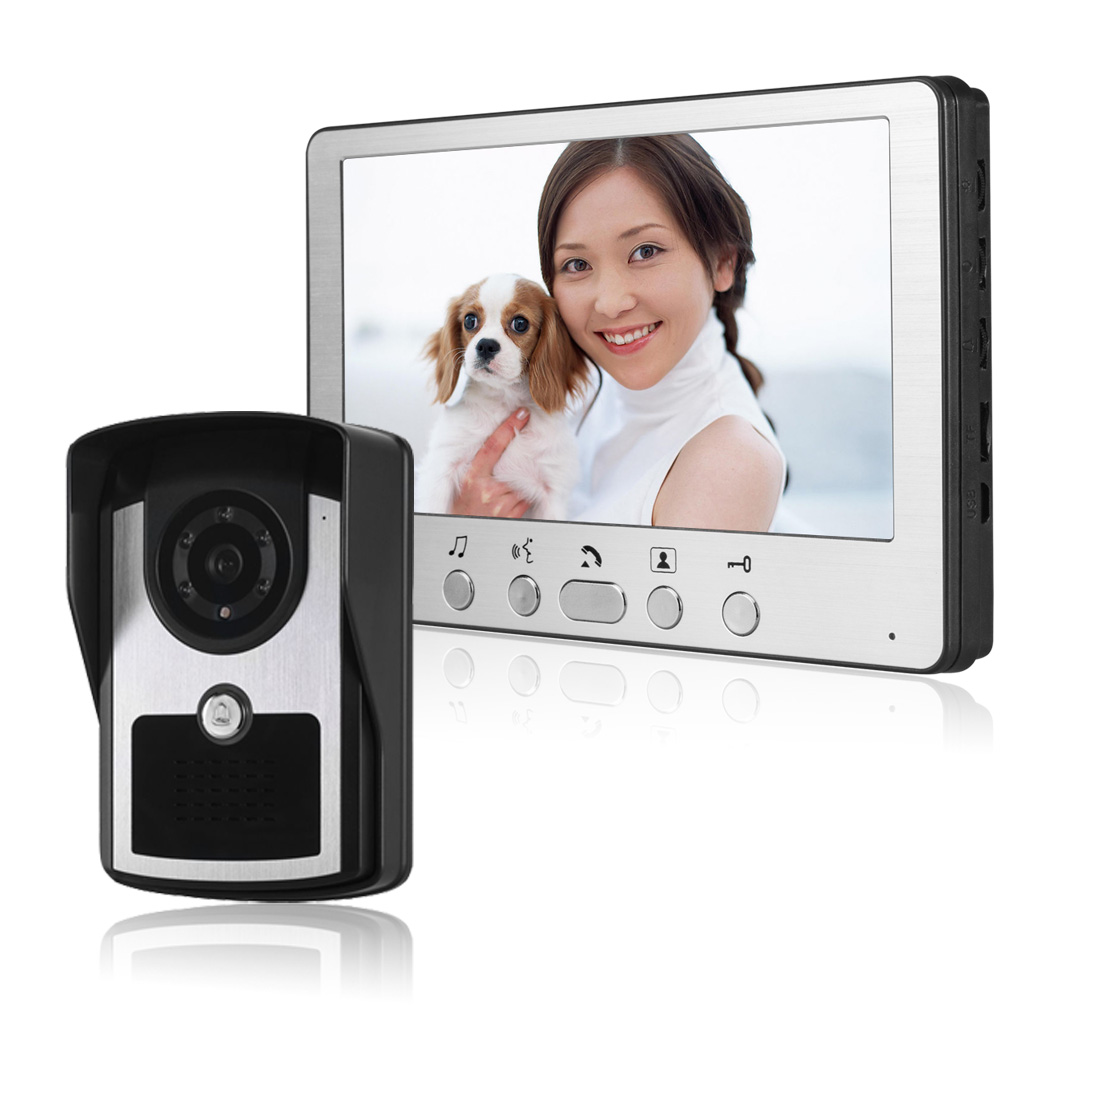 815FC11 Direct Factory With IR Night Vision Function IR Distance Is About 1-3 Meter 7' Color Video Door Phone Excel Performance zоом 3 day white with acp excel 3